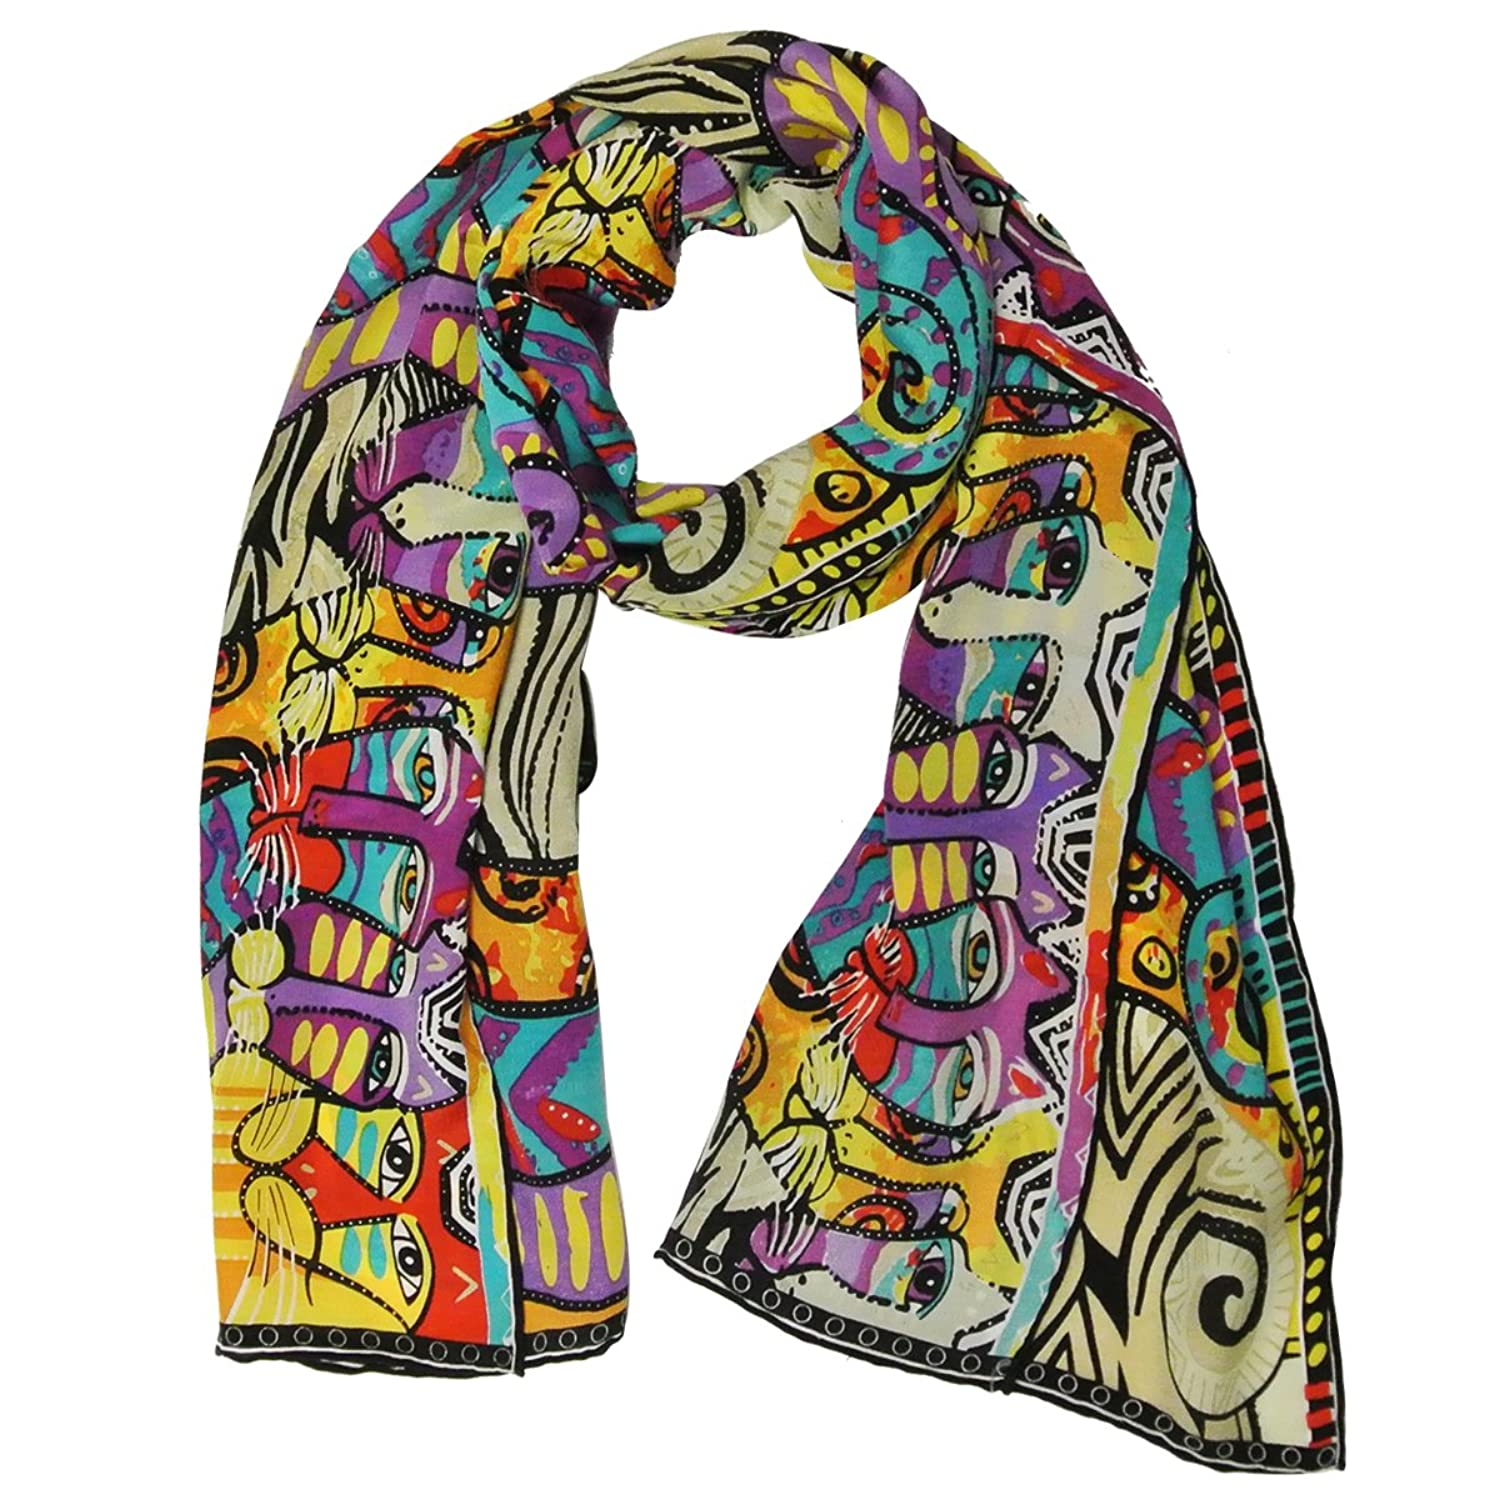 Allydrew Luxurious 100% Charmeuse Silk Long Scarf with Hand Rolled Edges, Family Pride